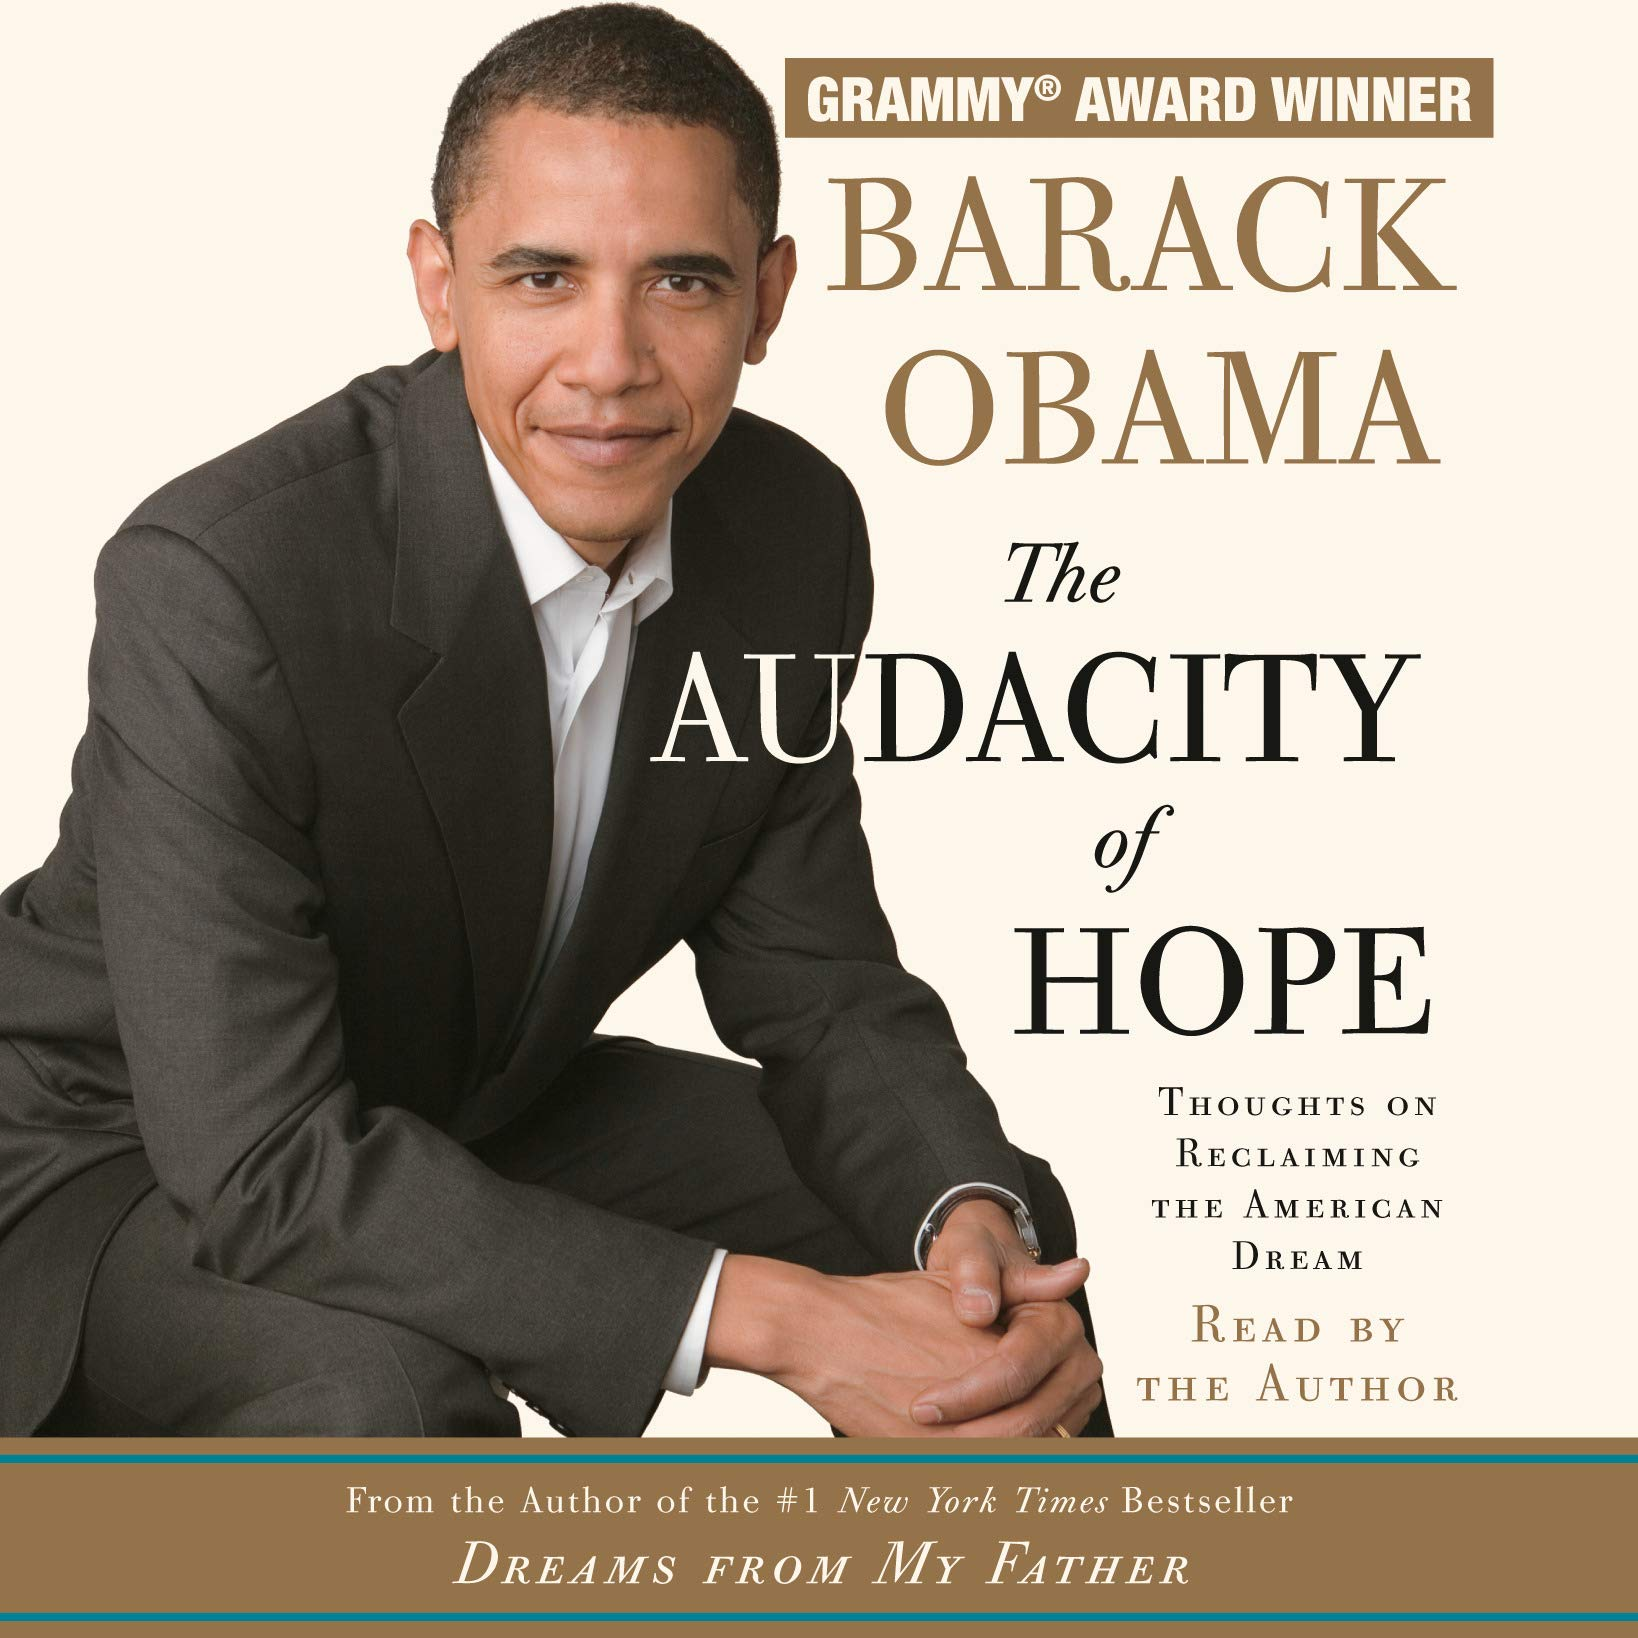 The Audacity of Hope: Thoughts on Reclaiming the American